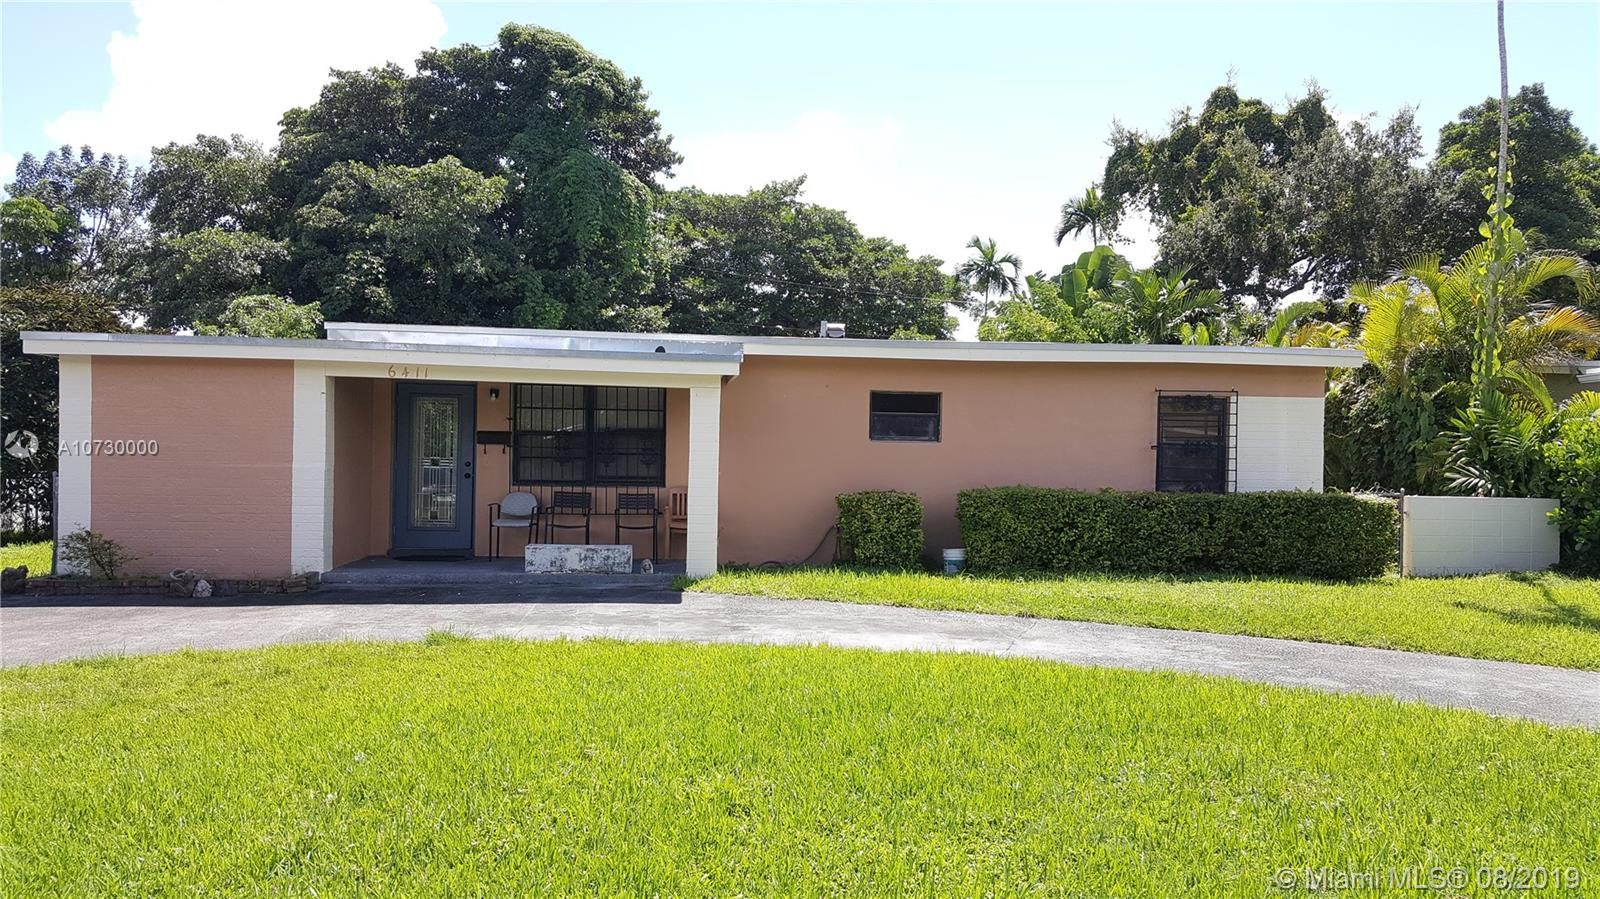 6411 SW 64th Ct  For Sale A10730000, FL